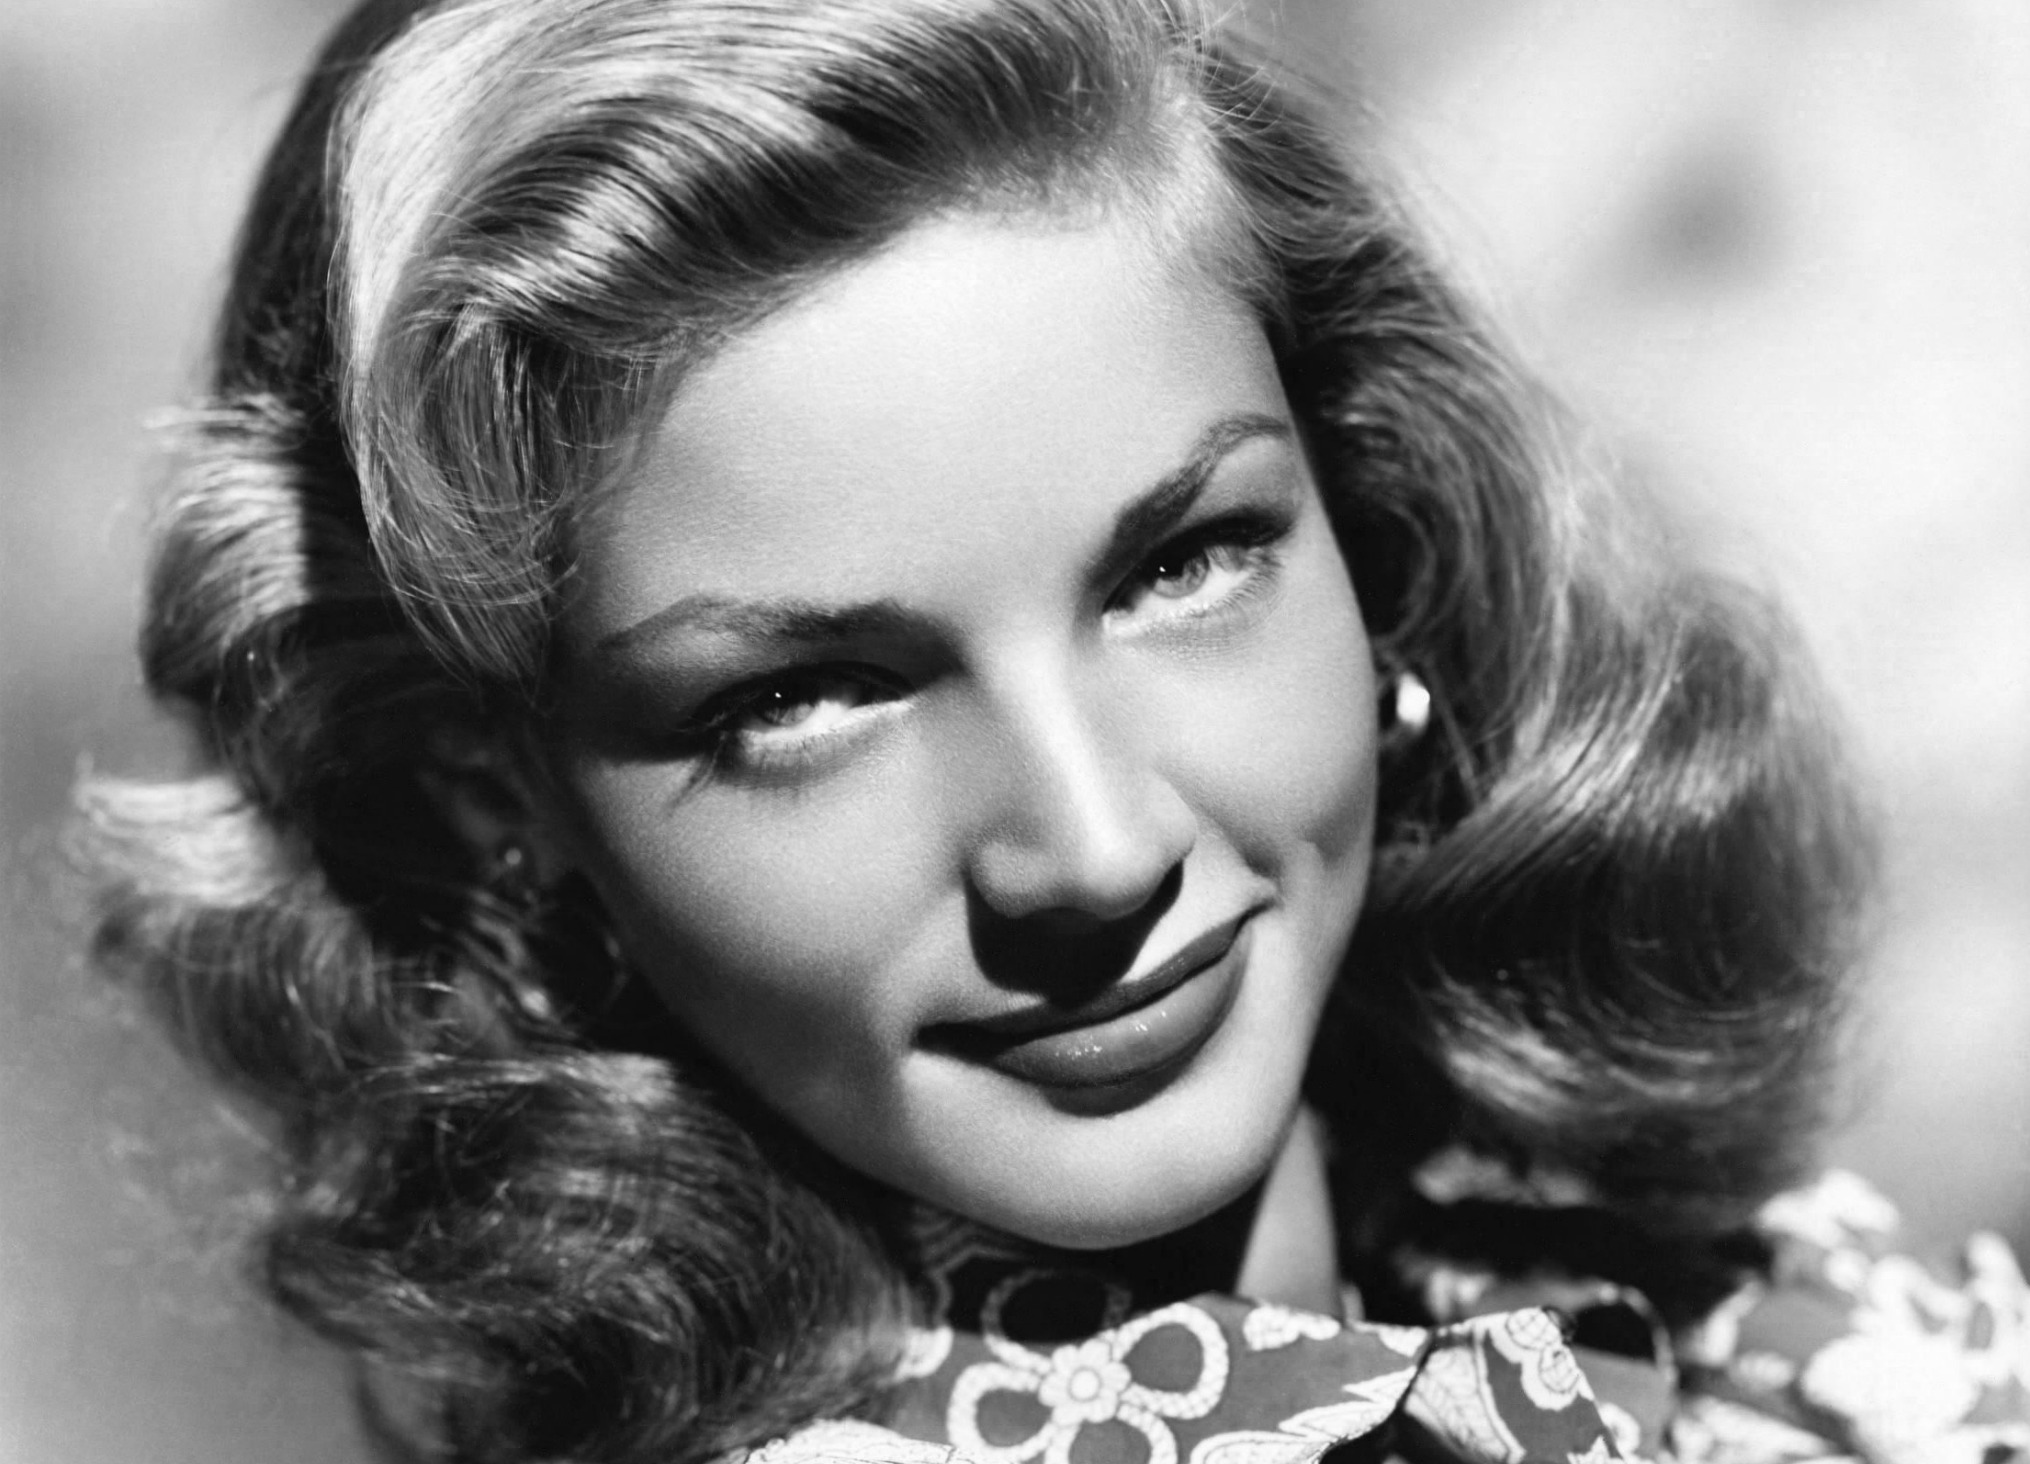 http://lounge.obviousmag.org/isso_compensa/2015/12/14/lauren-bacall.jpg